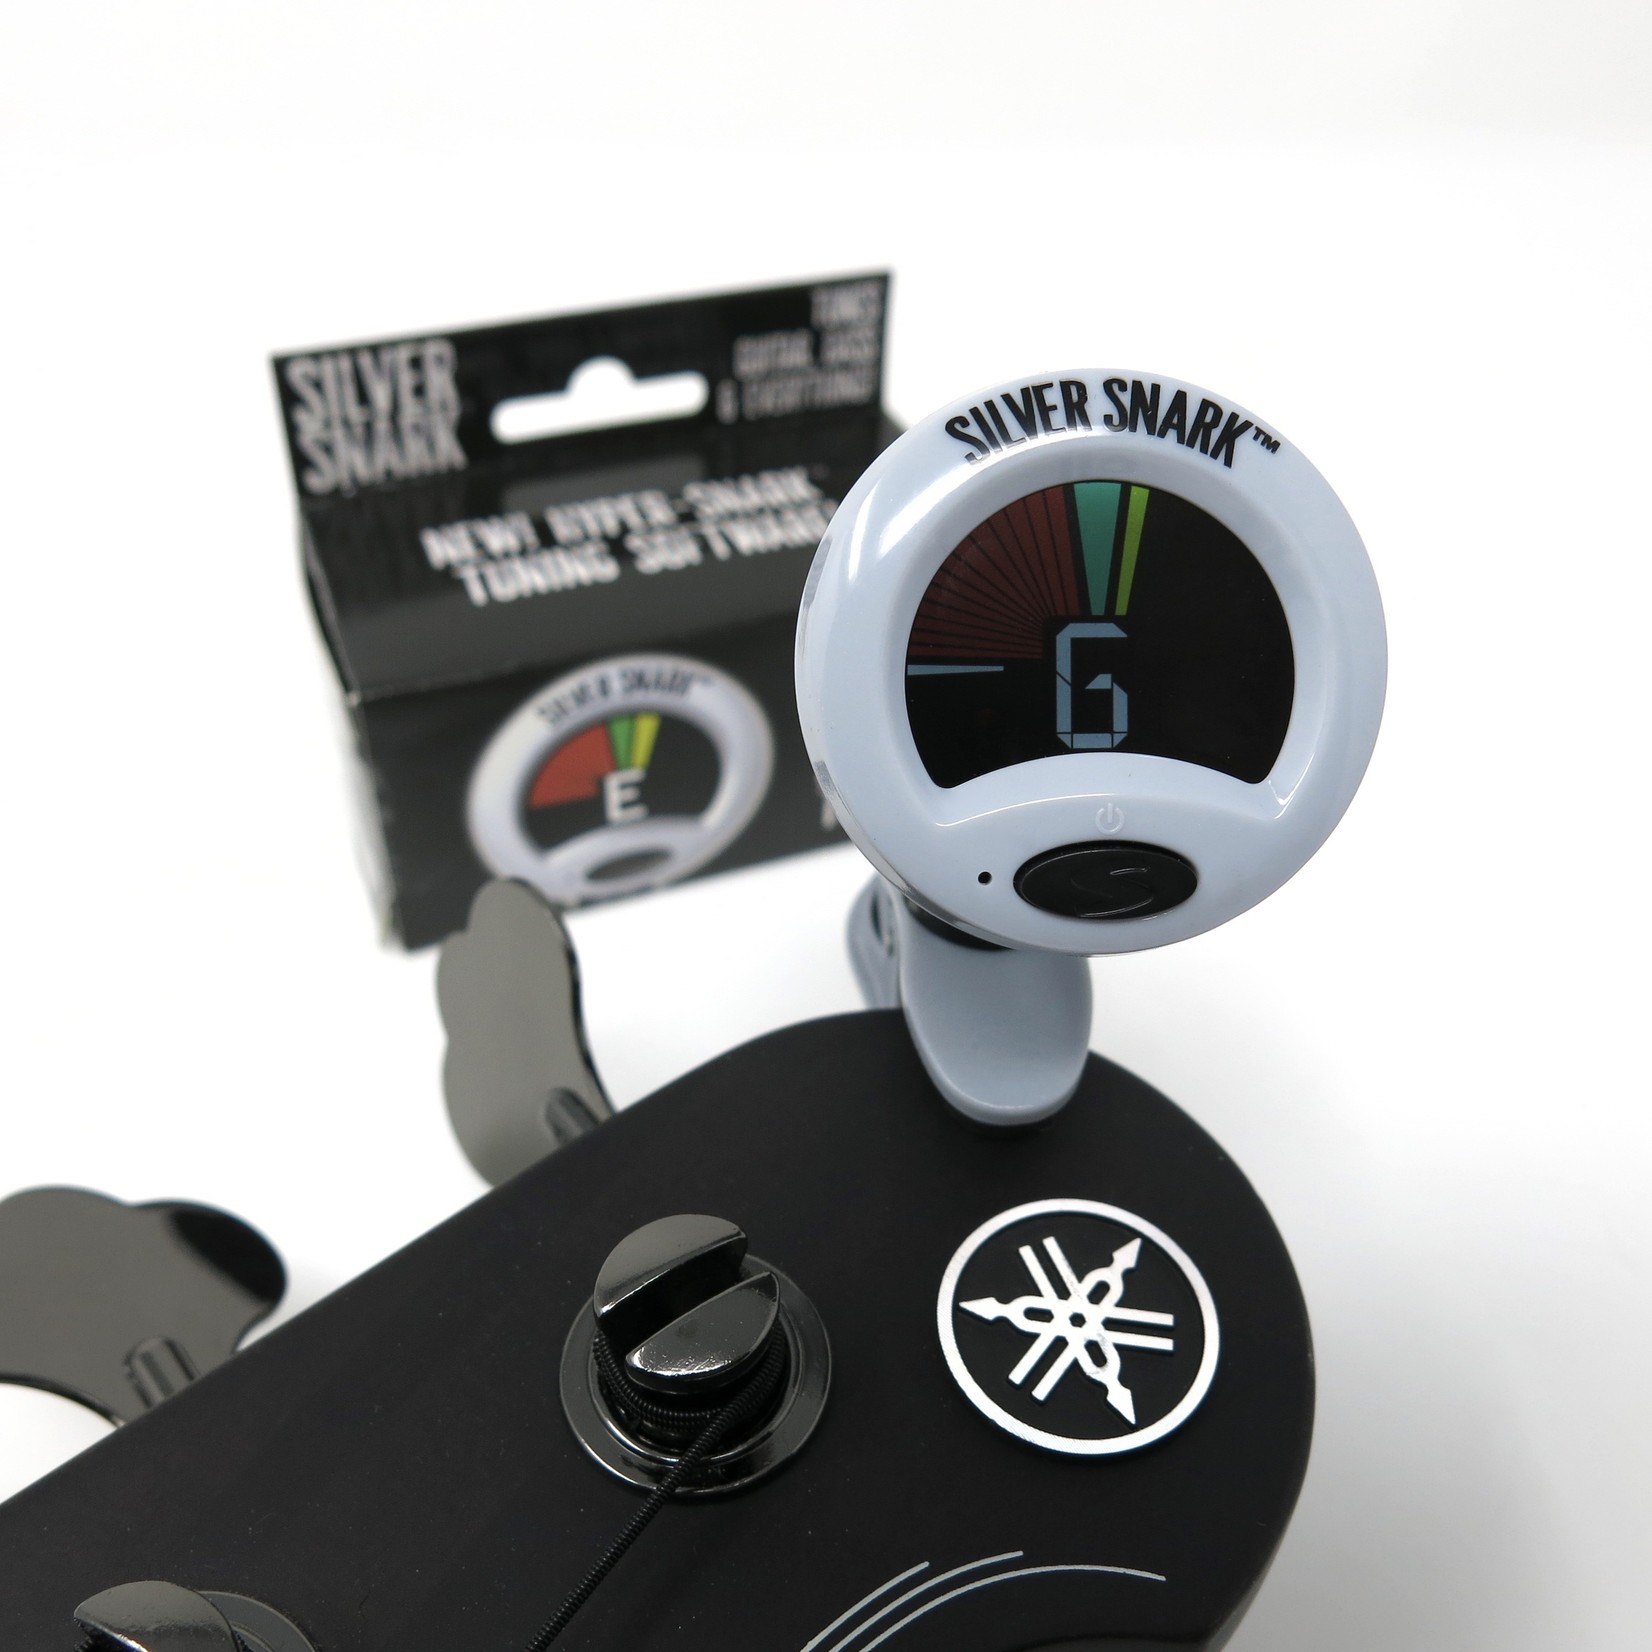 Snark Snark Silver Snark Tuner for  Guitar, Bass, and All Instruments - NEW! Tune faster, stronger, longer